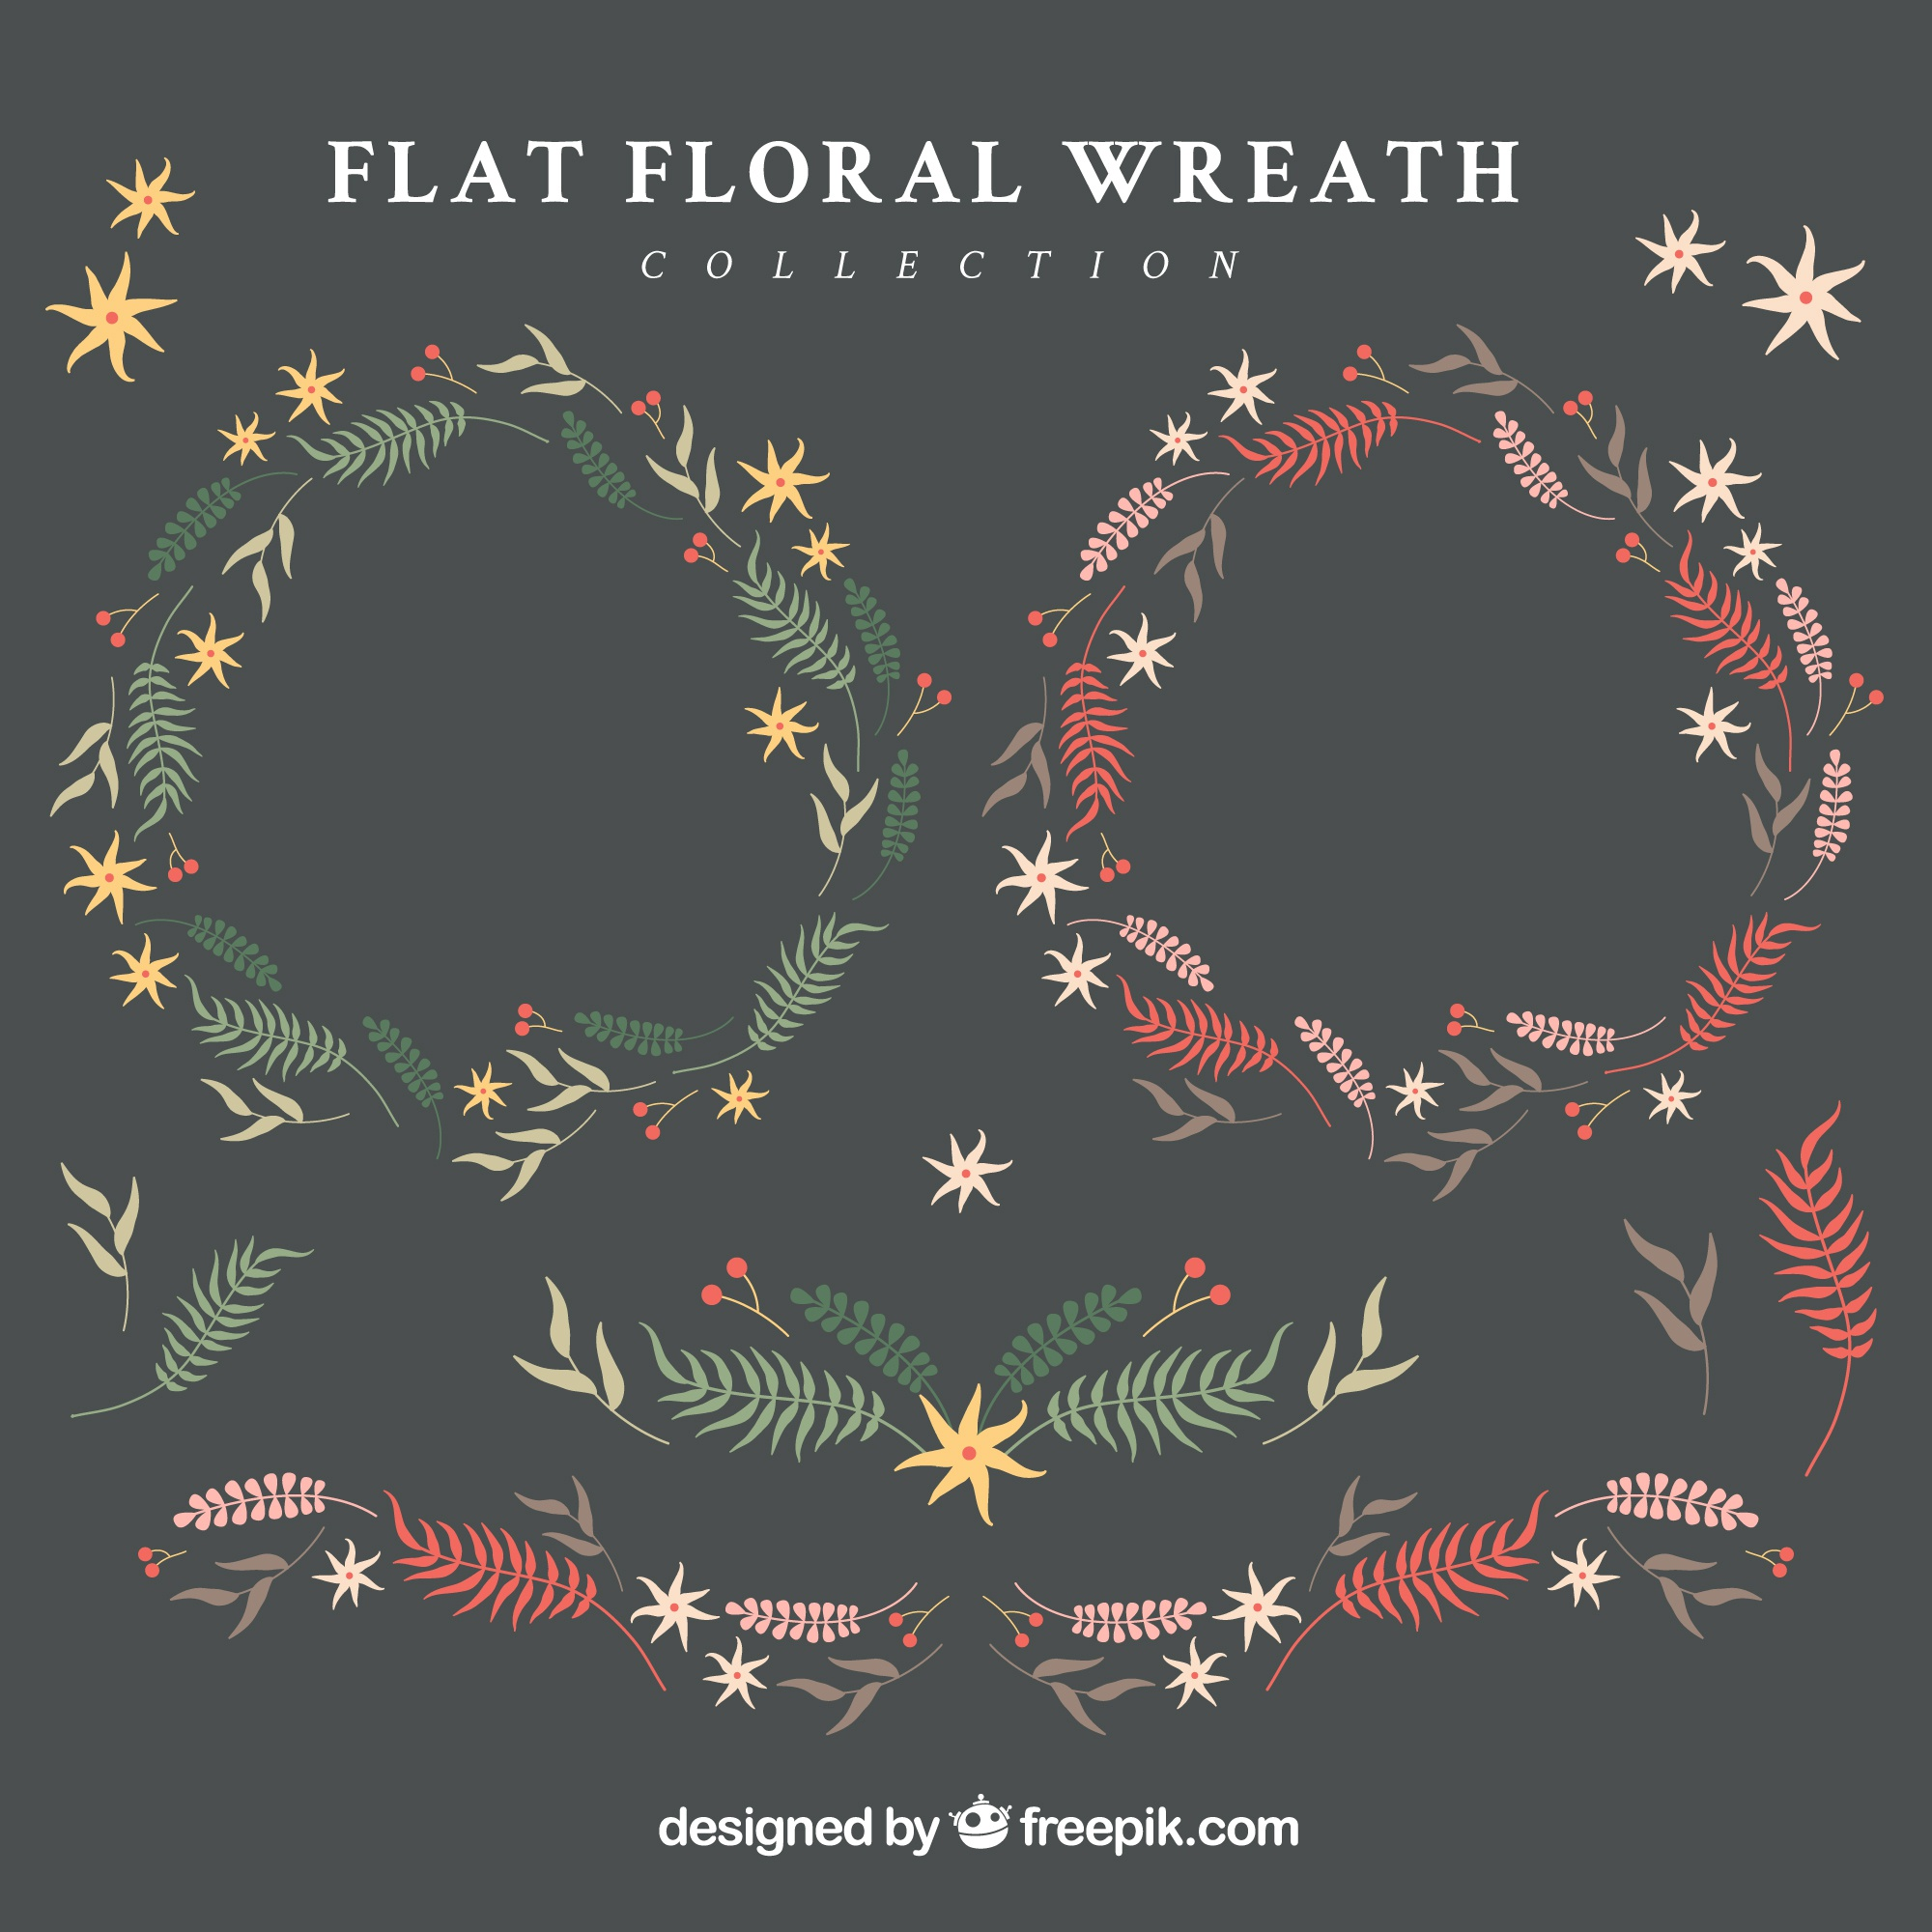 Pack of hand-drawn floral wreaths